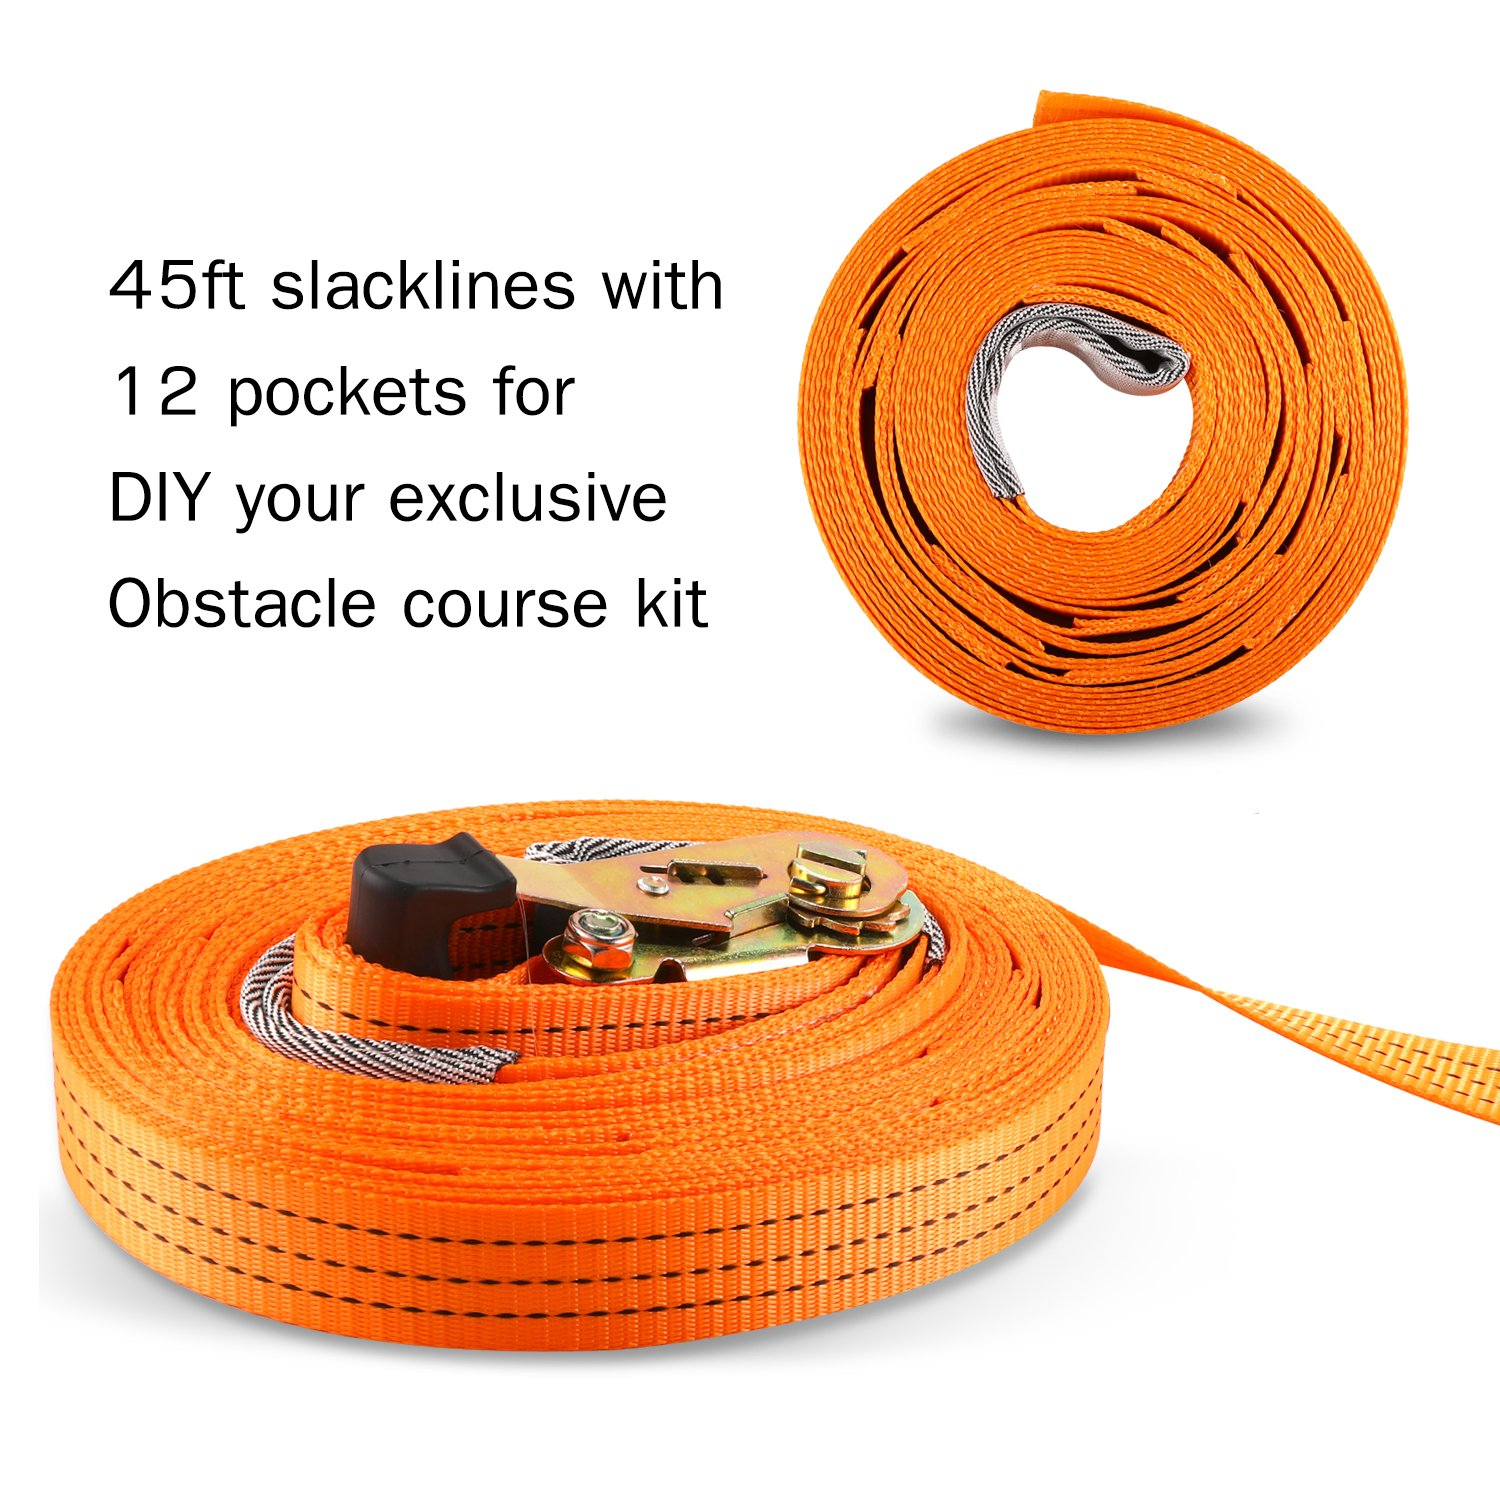 PACKGOUT Slackline, 45' Obstacles Course for Kids Warrior Training Equipment Swing Hanging Monkey Bar Kits, Gifts for Boys and Girls Included Carrying Bag and Tree Protectors by PACKGOUT (Image #3)